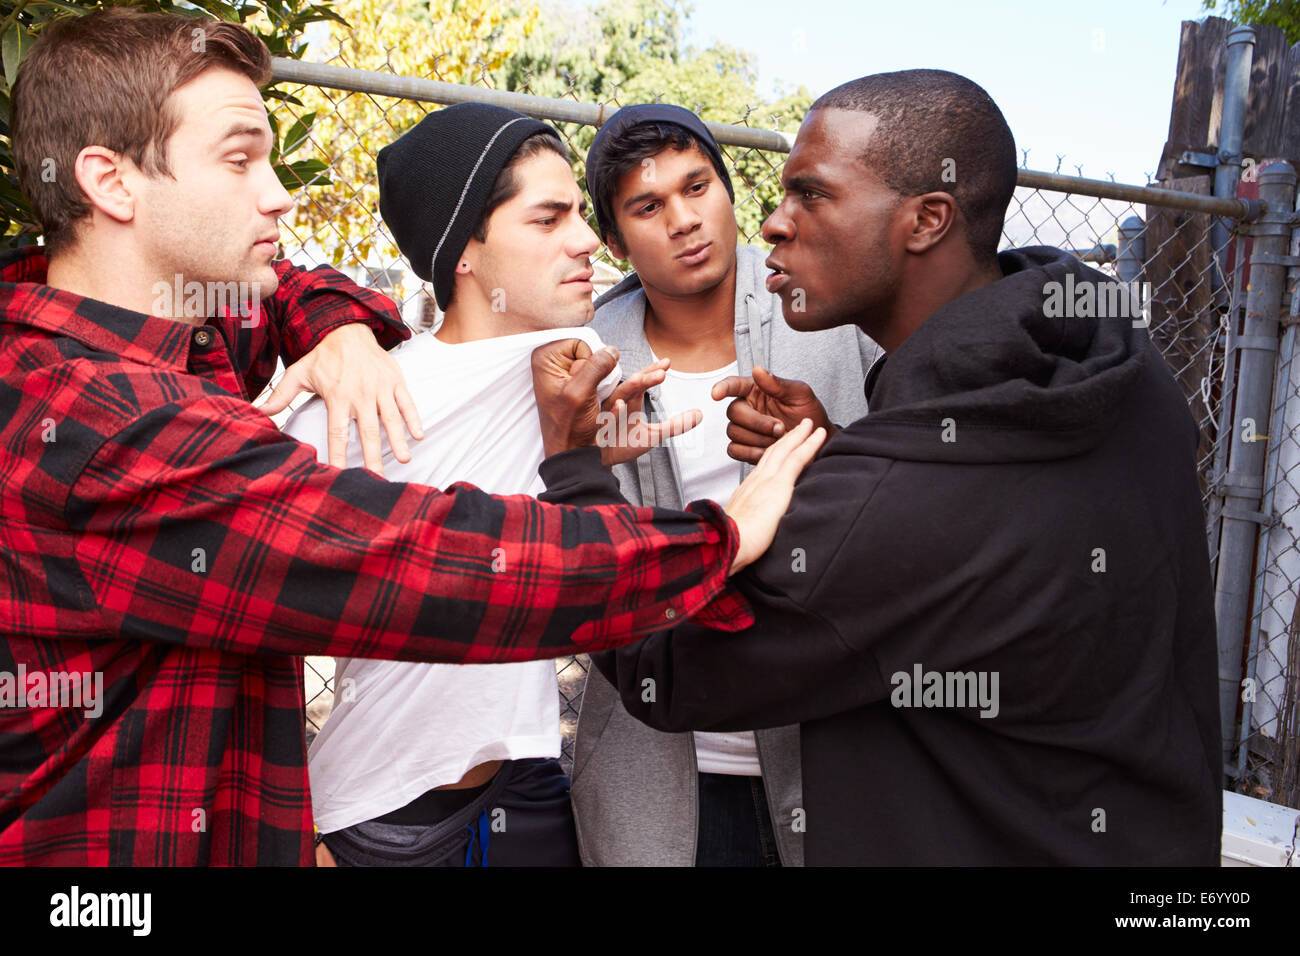 Fight Breaking Out Amongst Gang Members - Stock Image